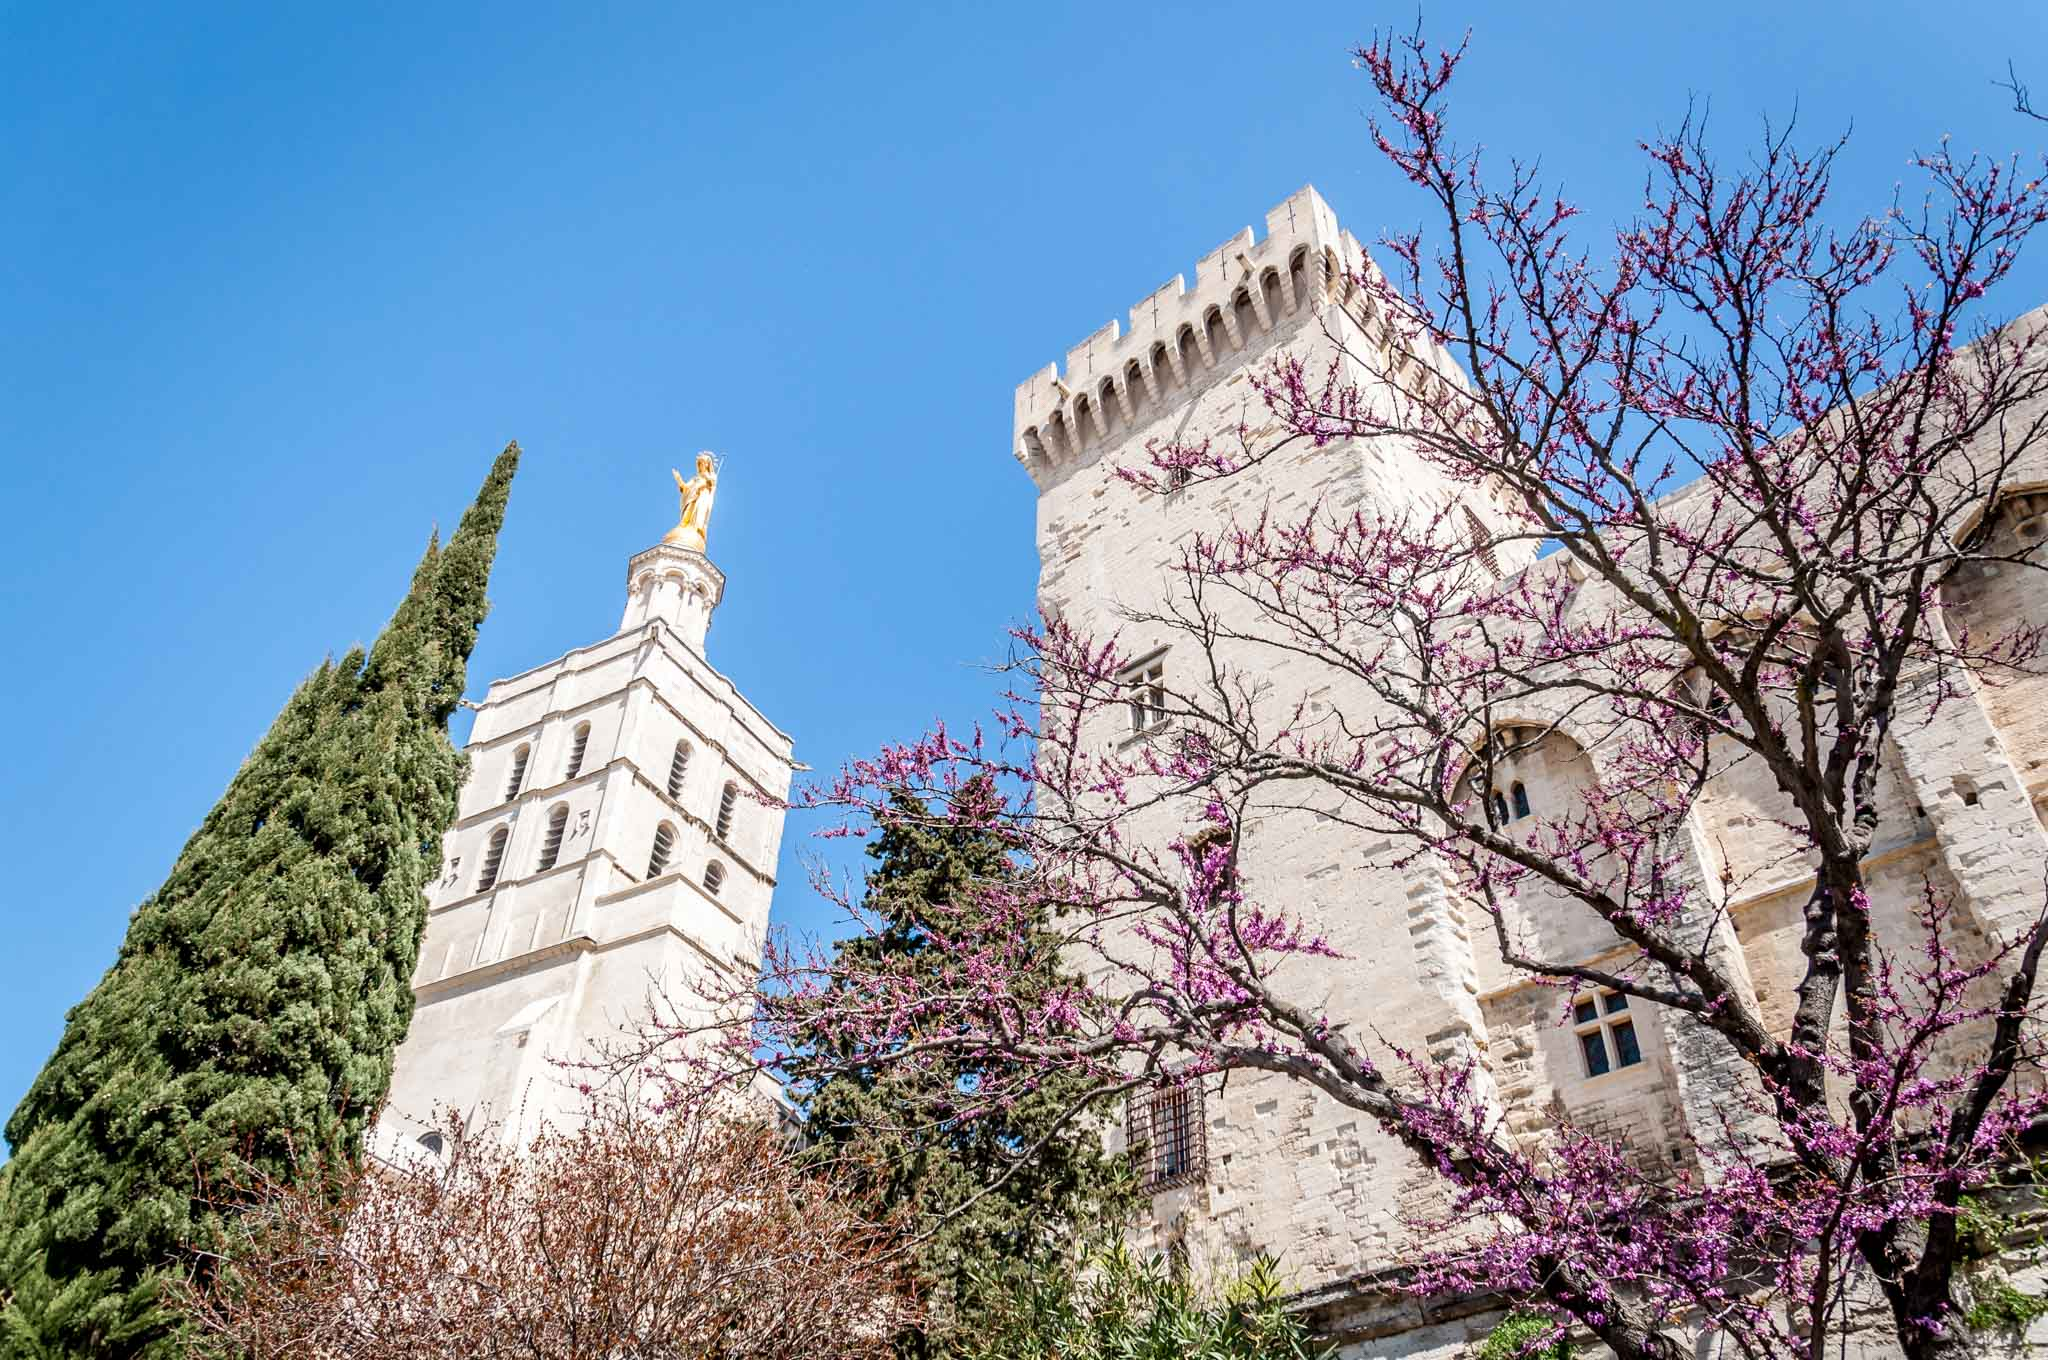 Avignon's Palace of the Popes is one of the best places to visit in the South of France in the spring